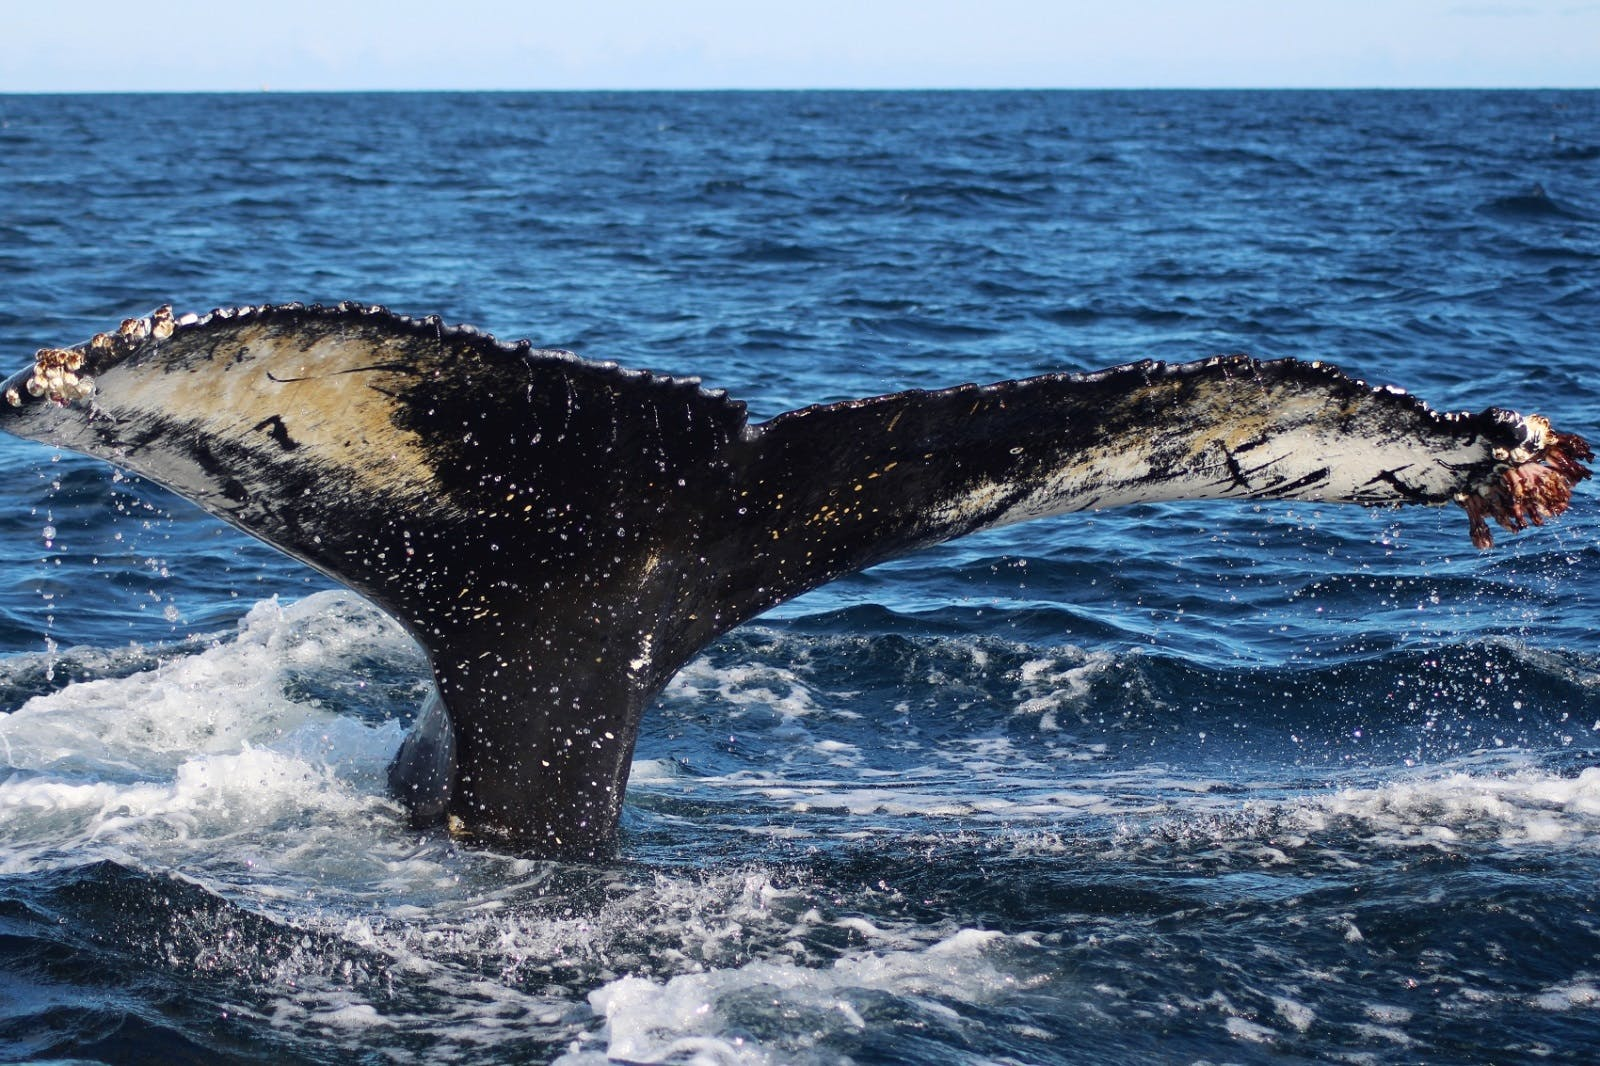 Whale watching in Northern Europe